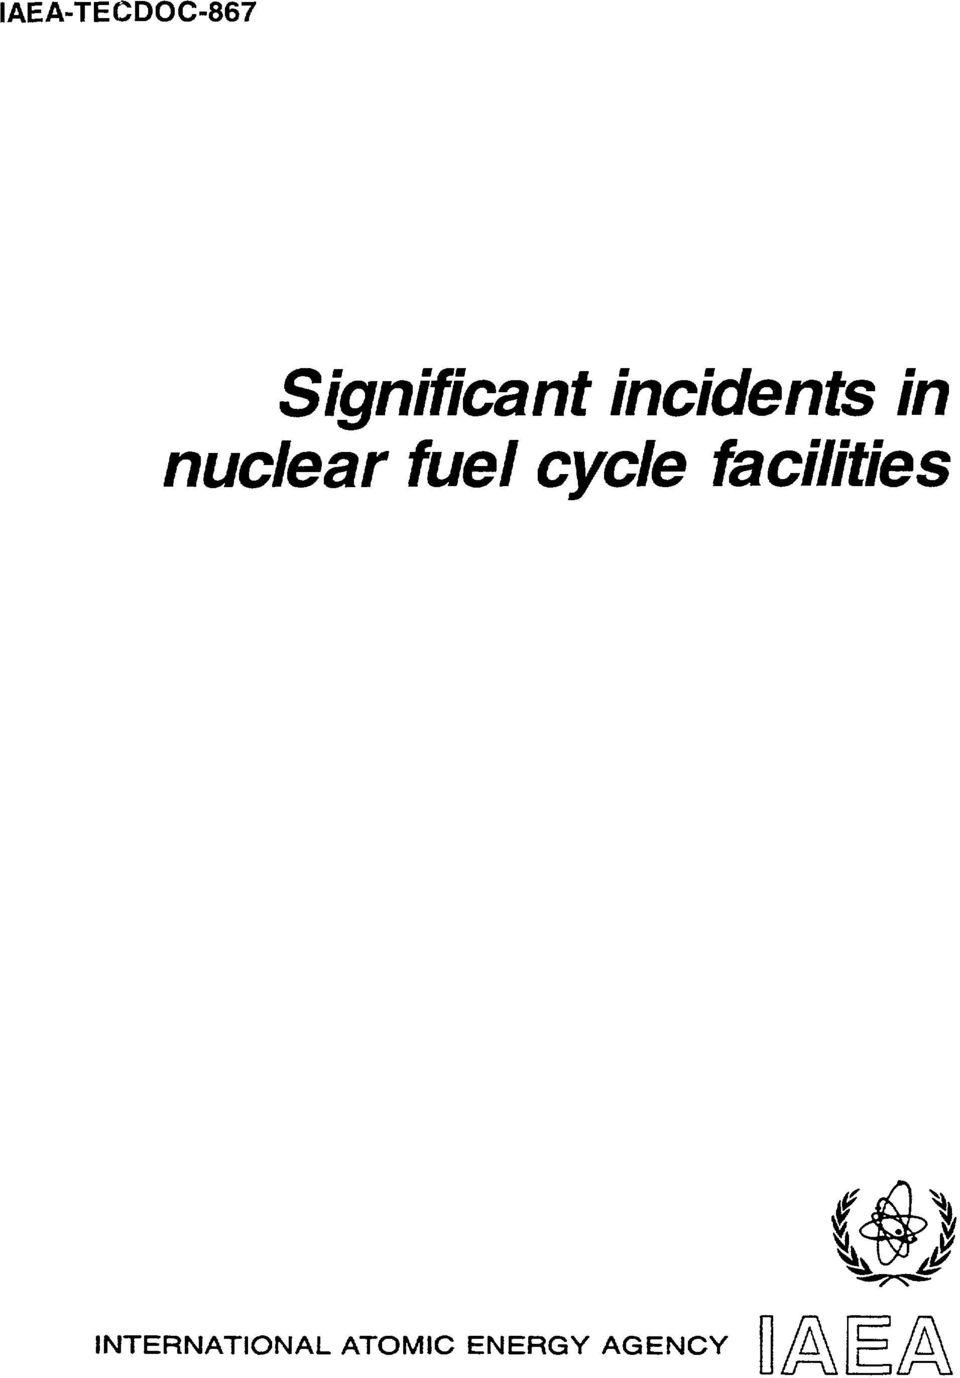 in nuclear fuel cycle